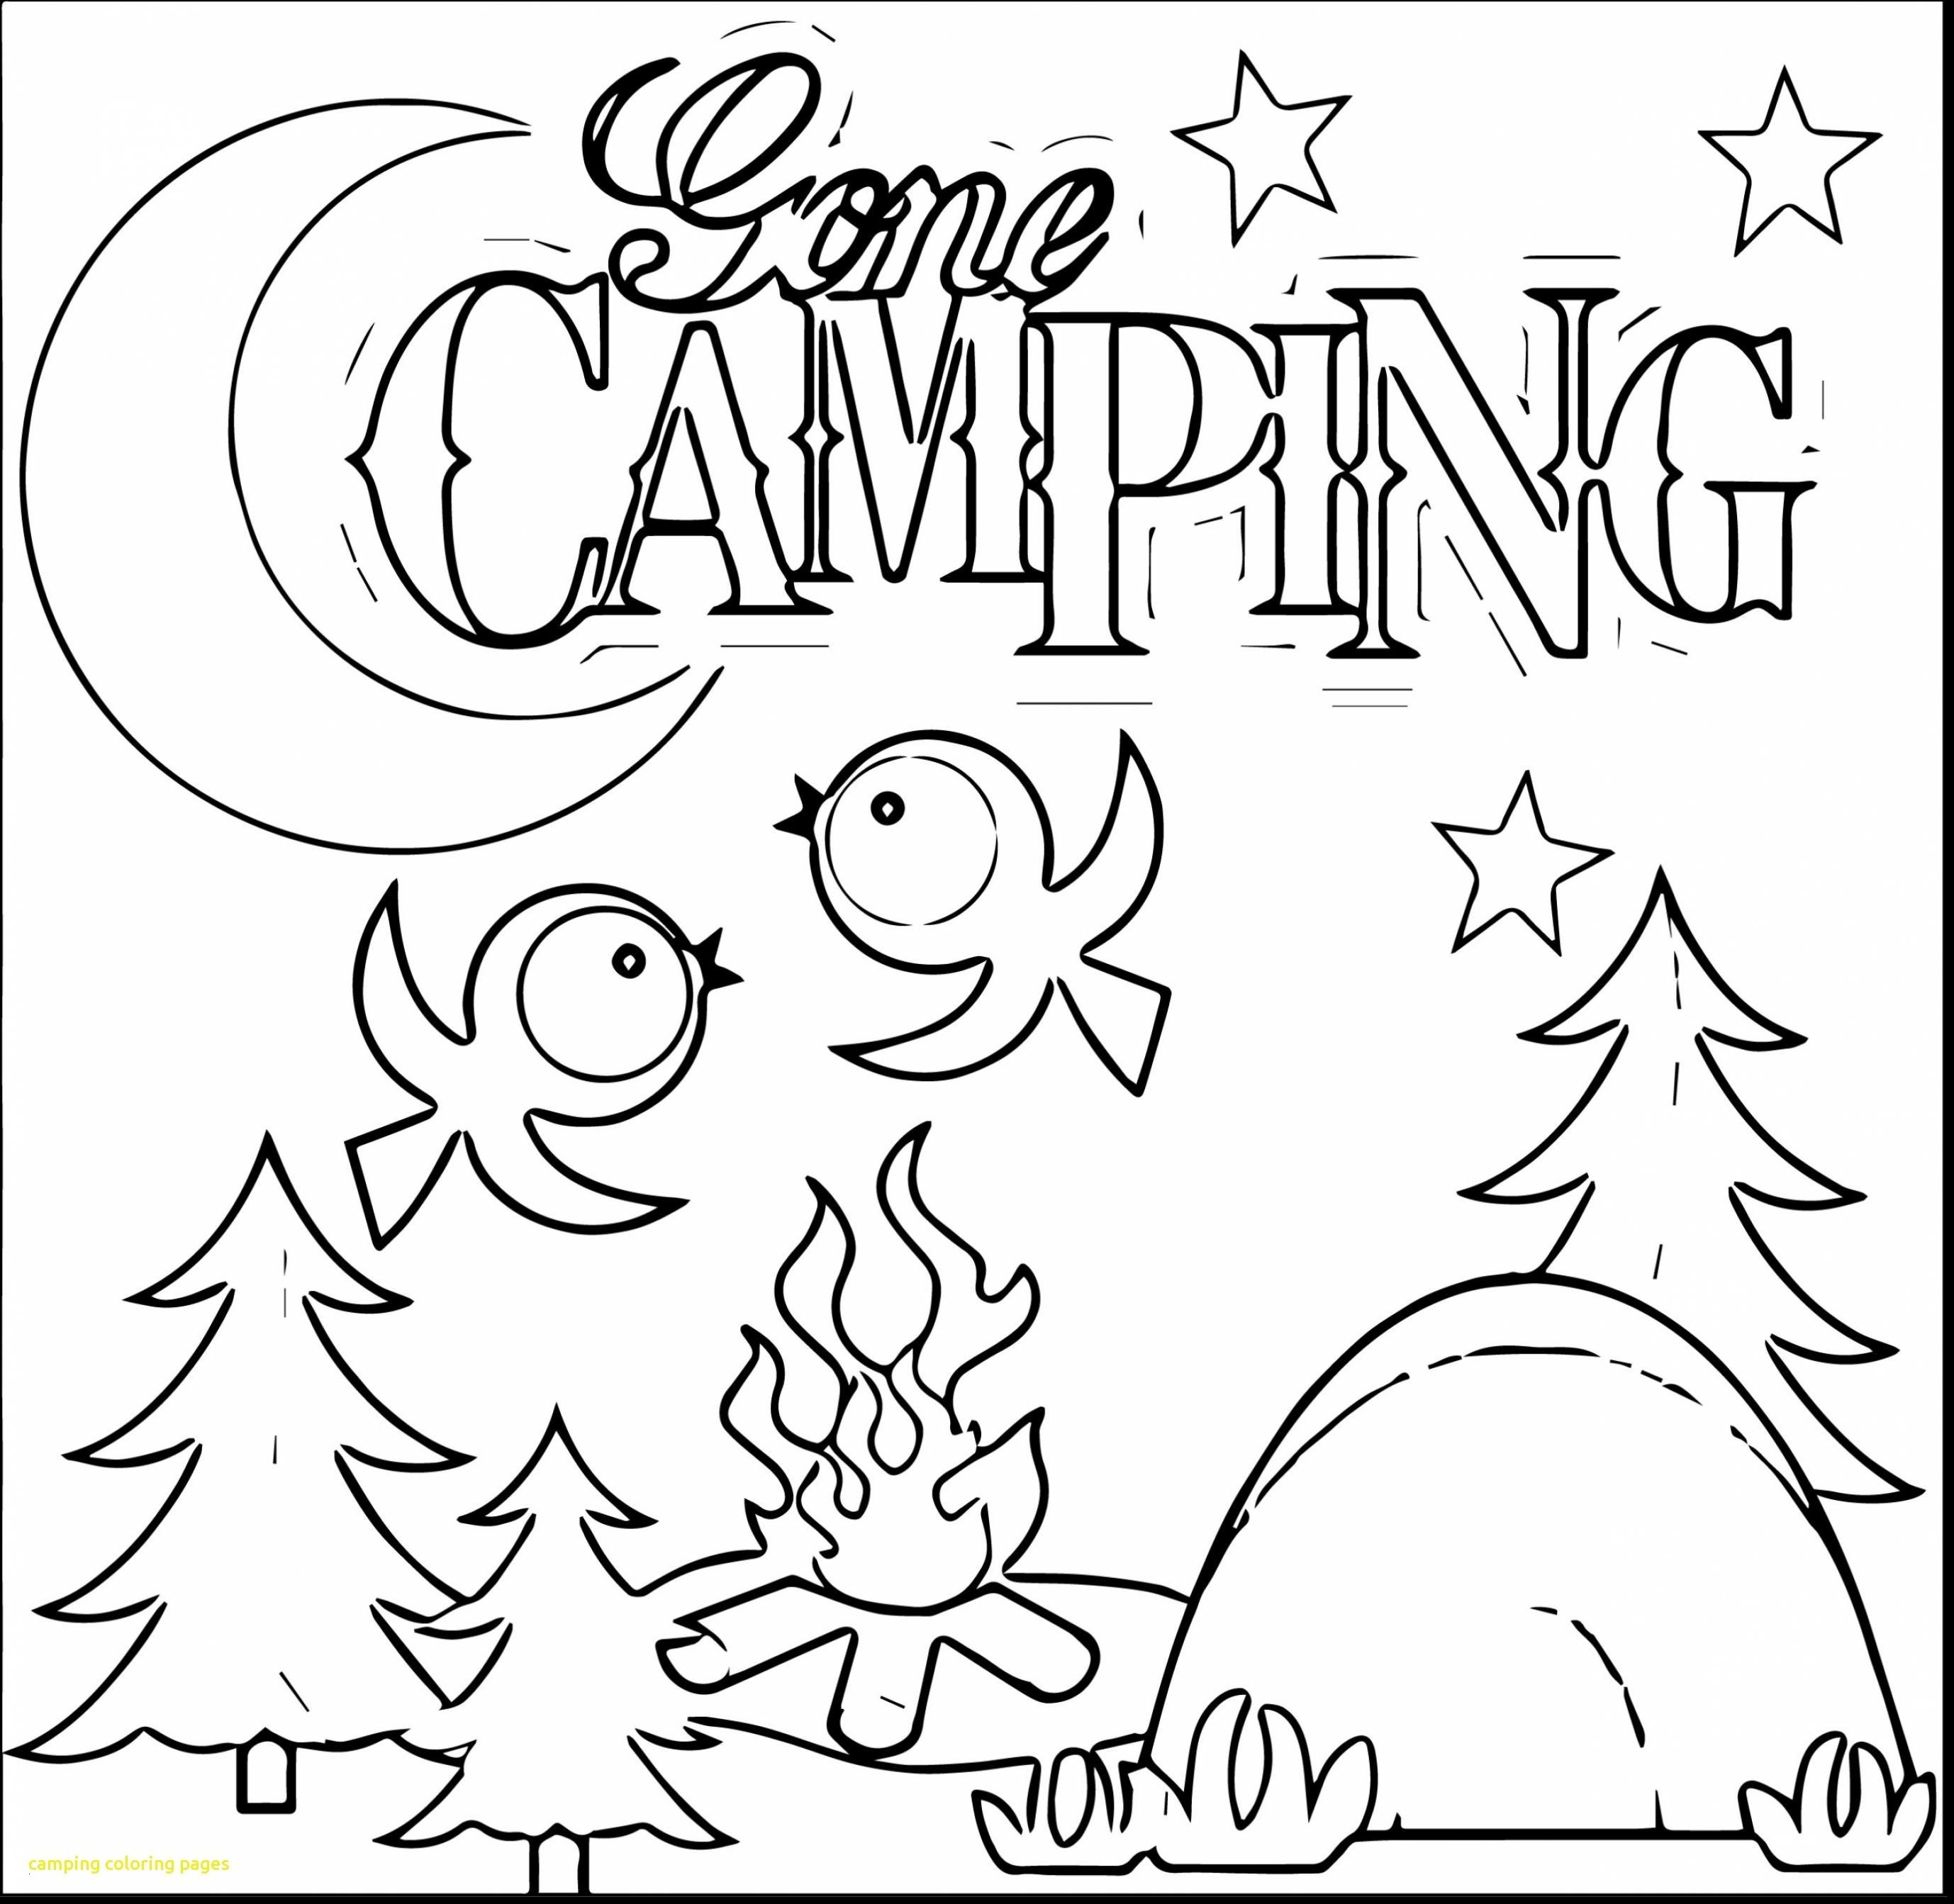 Camping Coloring Pages to Print  Printable 18i - Free For Children